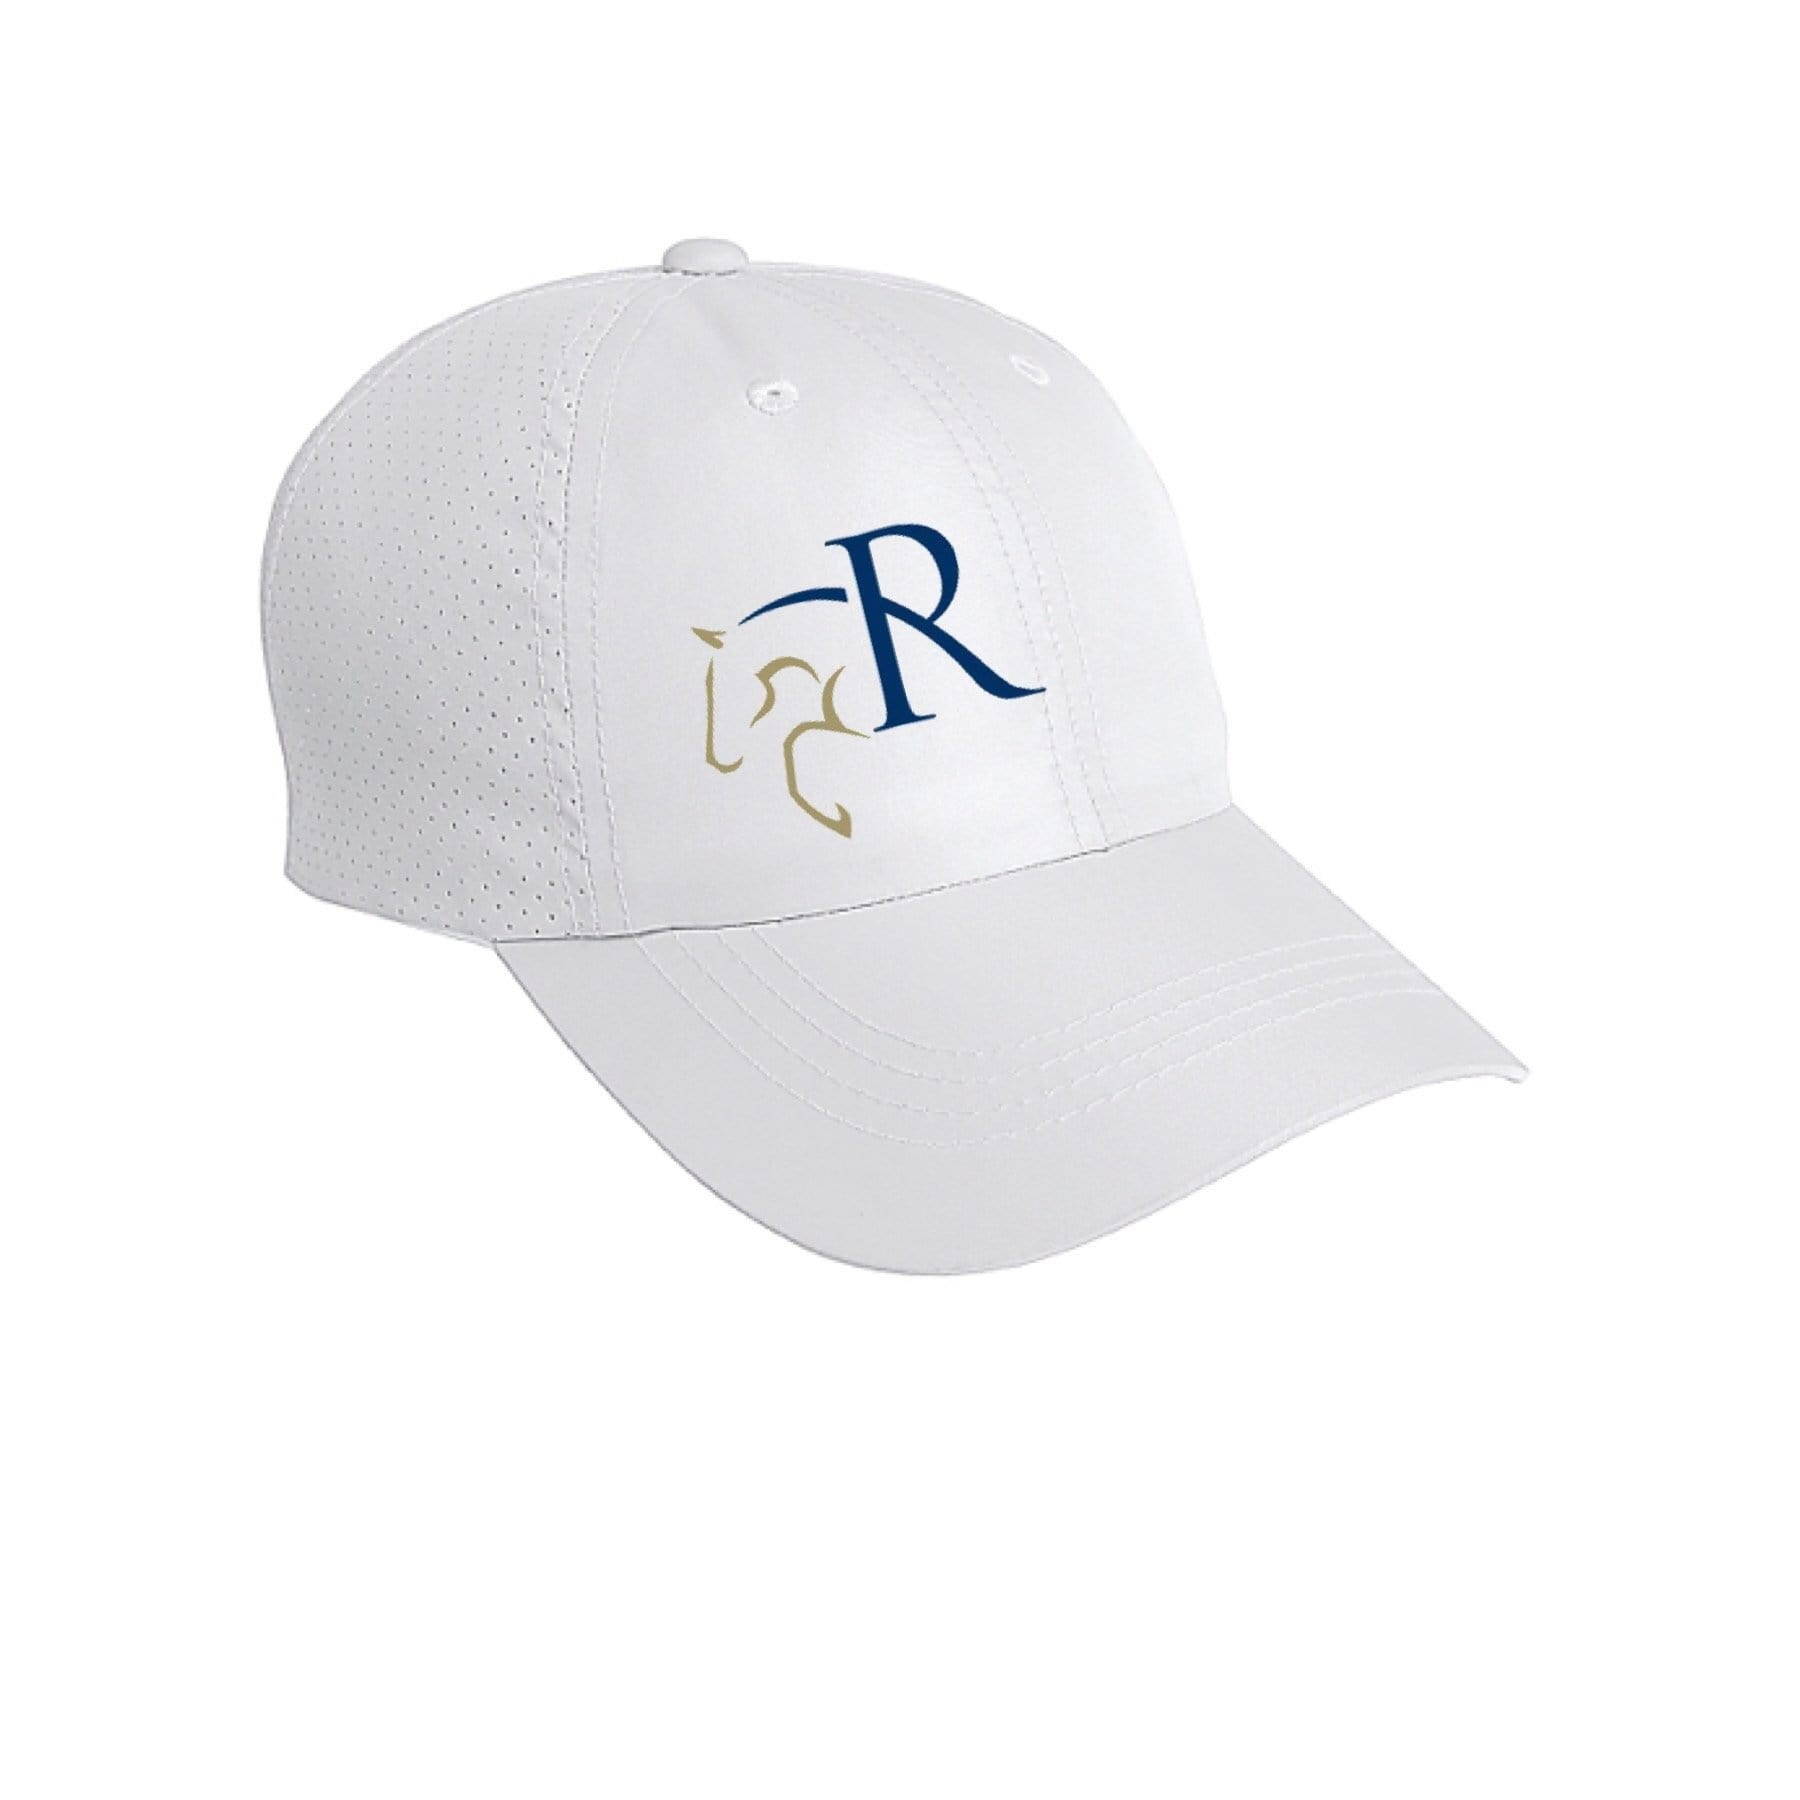 Equestrian Team Apparel Custom Team Hats Rivers Edge Farm Baseball Cap equestrian team apparel online tack store mobile tack store custom farm apparel custom show stable clothing equestrian lifestyle horse show clothing riding clothes horses equestrian tack store